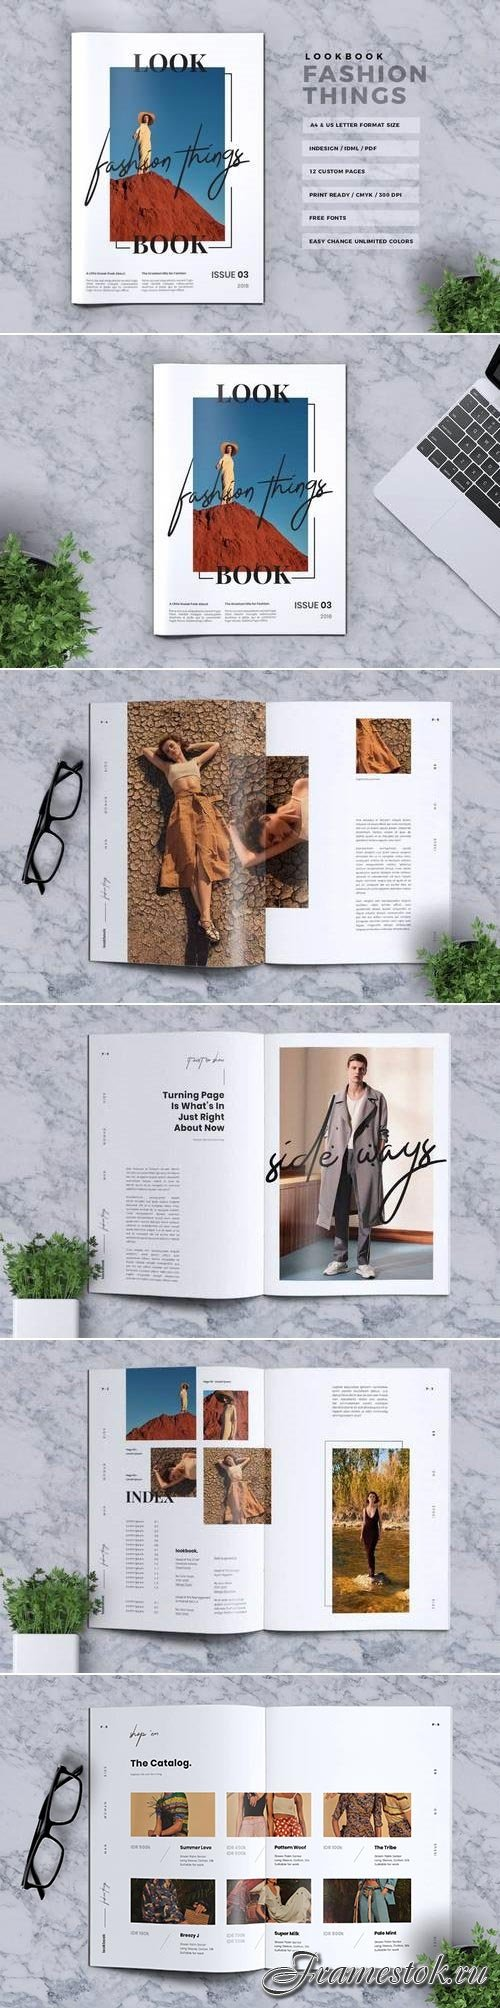 CreativeMarket Fashion Things Lookbook 3023699